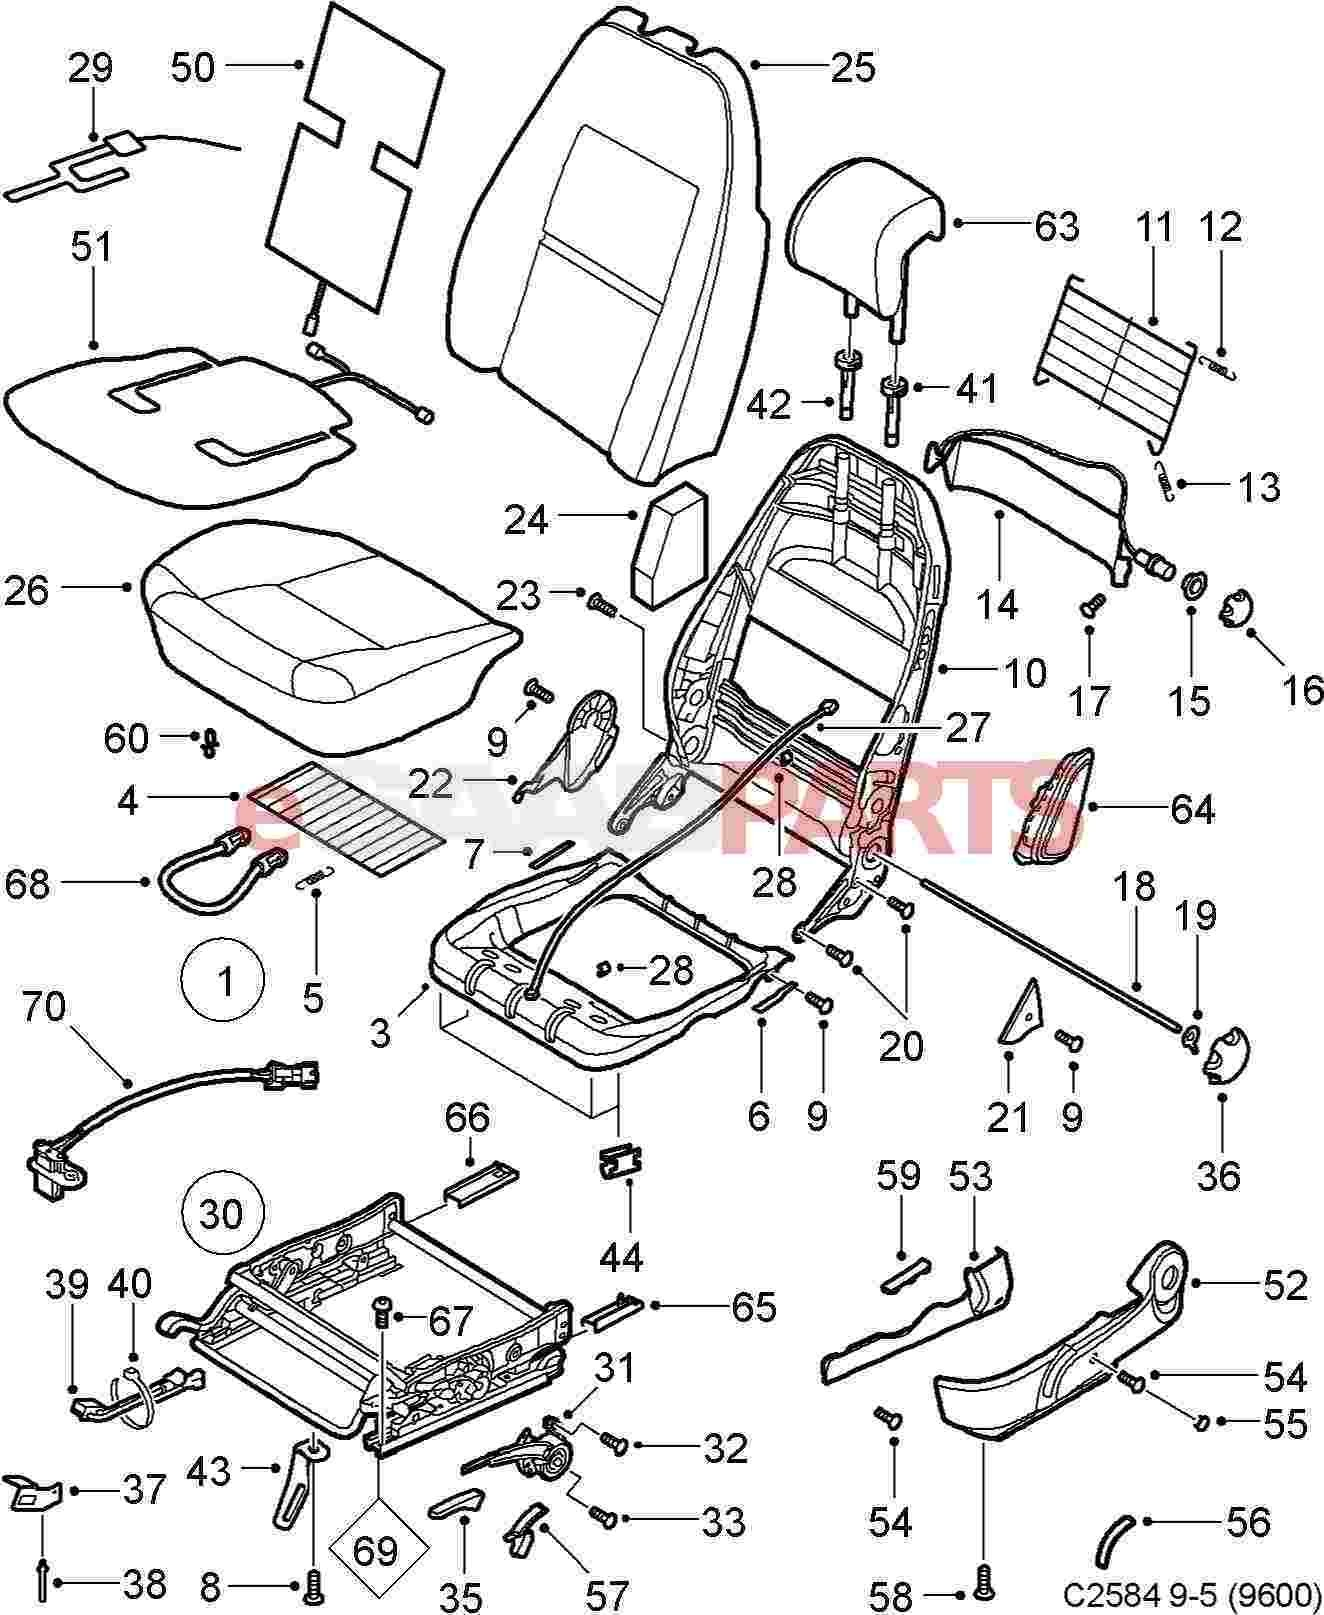 Seat Belt Parts Diagram Esaabparts Of Seat Belt Parts Diagram 2002 Nissan Frontier Crew Cab Oem Parts Nissan Usa Estore